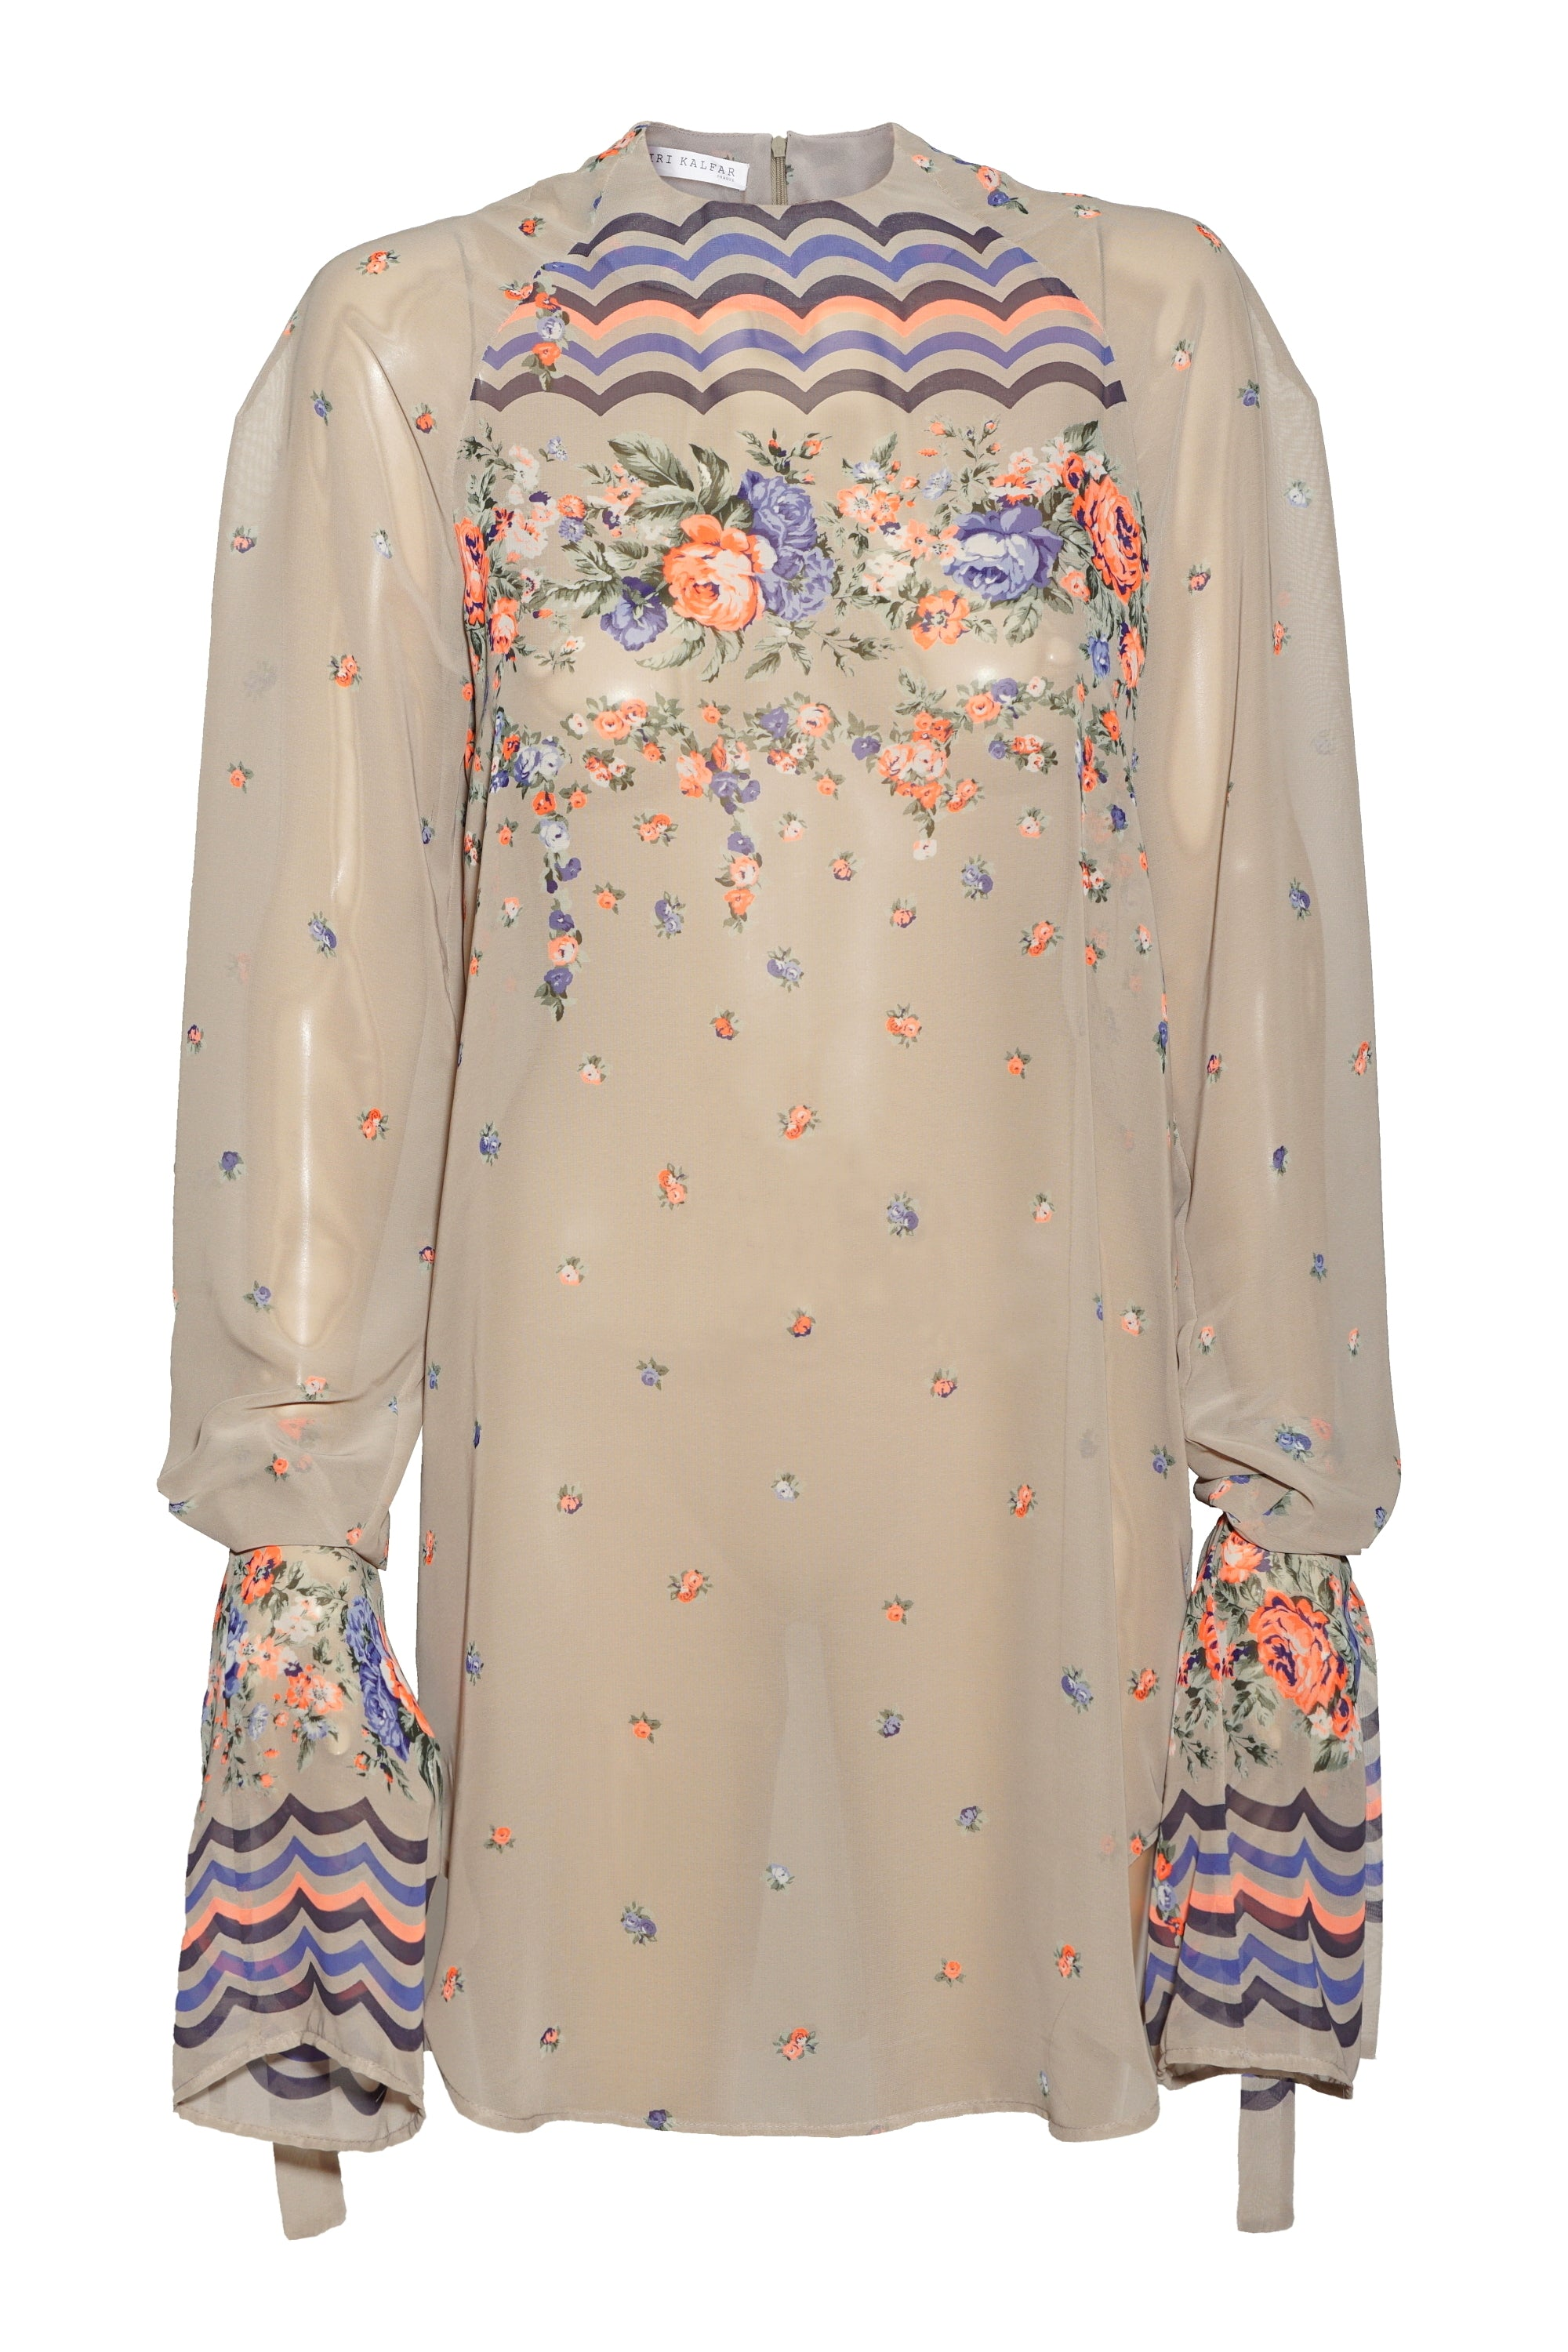 FLORAL PATTERN BLOUSE WITH RIBBONS